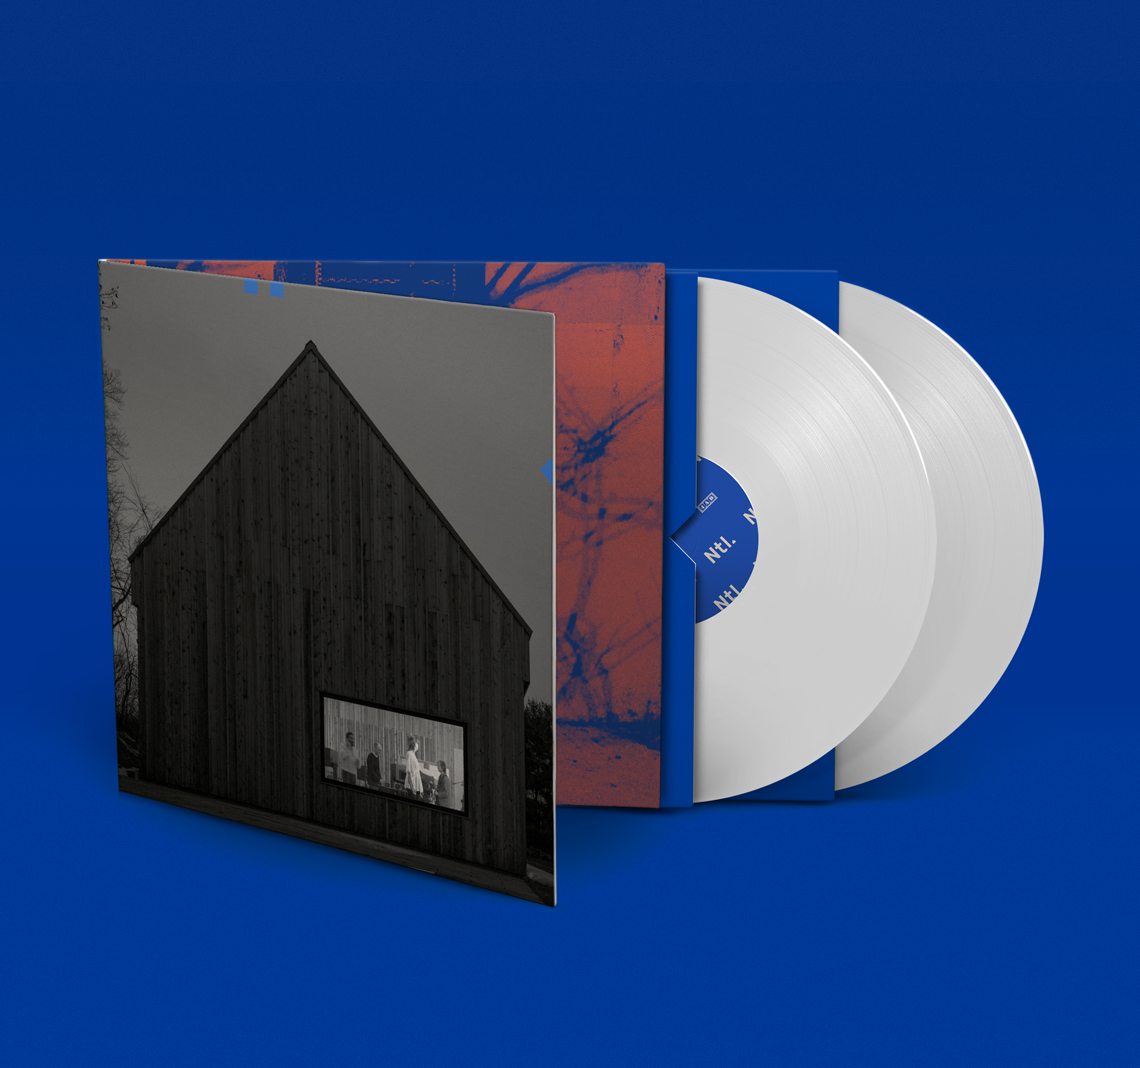 thenational-sleep-well-beast-white-vinyl-colored-gerosa-records